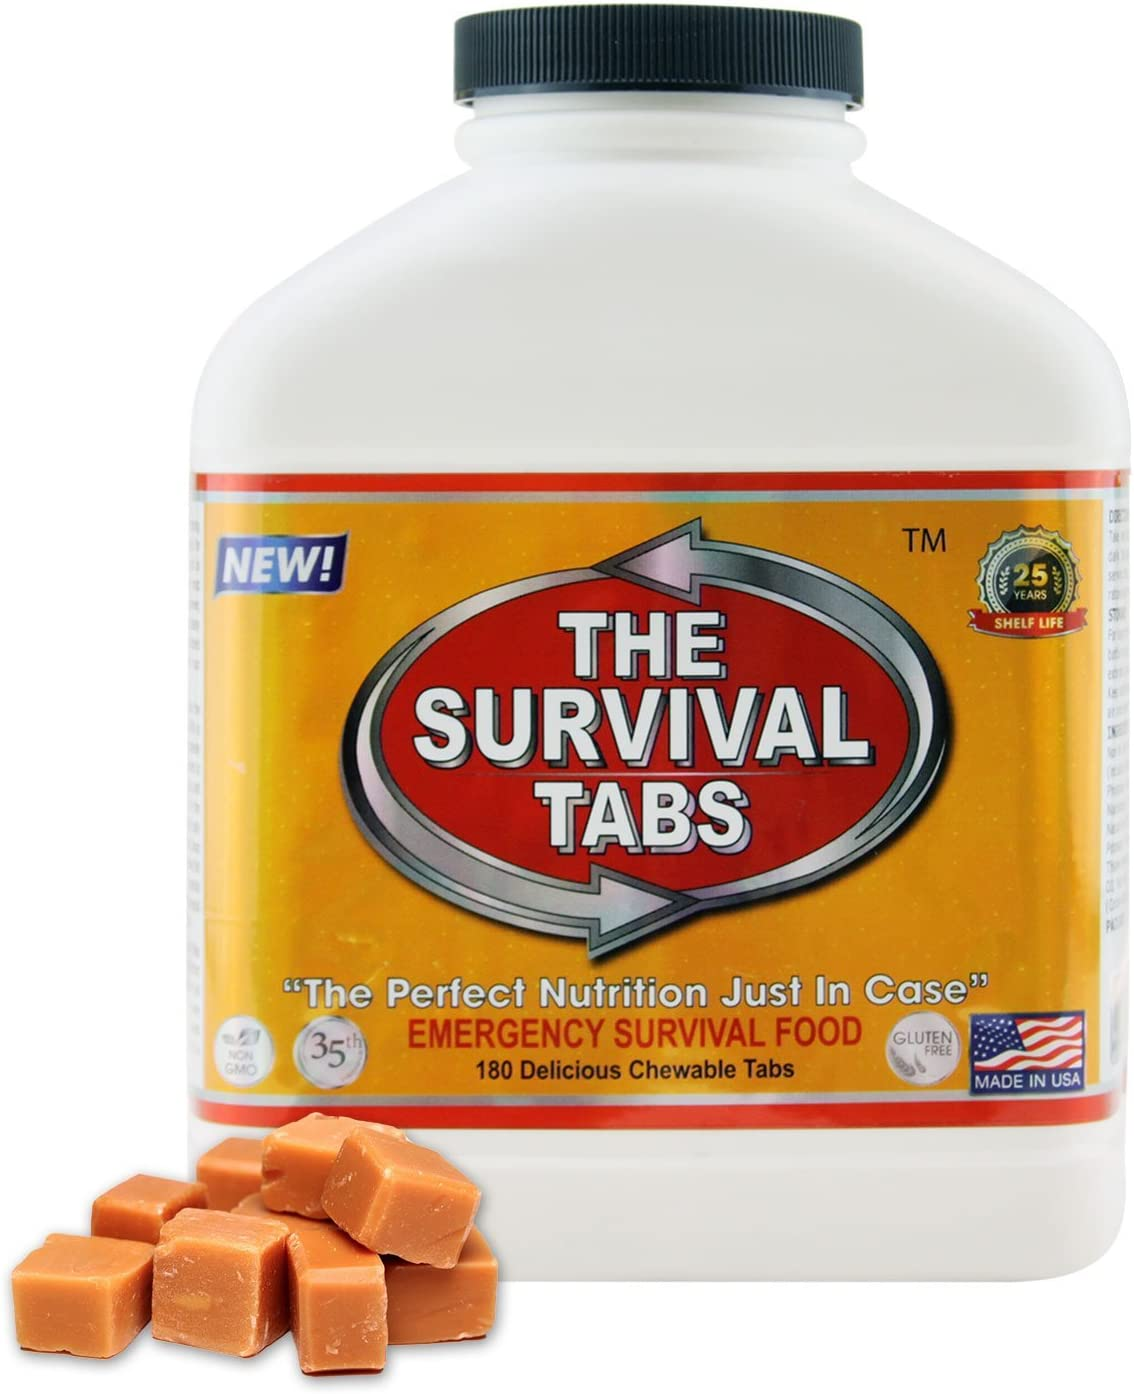 Survival food gluten free and non-GMO survival food 15 days supply butterscotch  exp 25 years